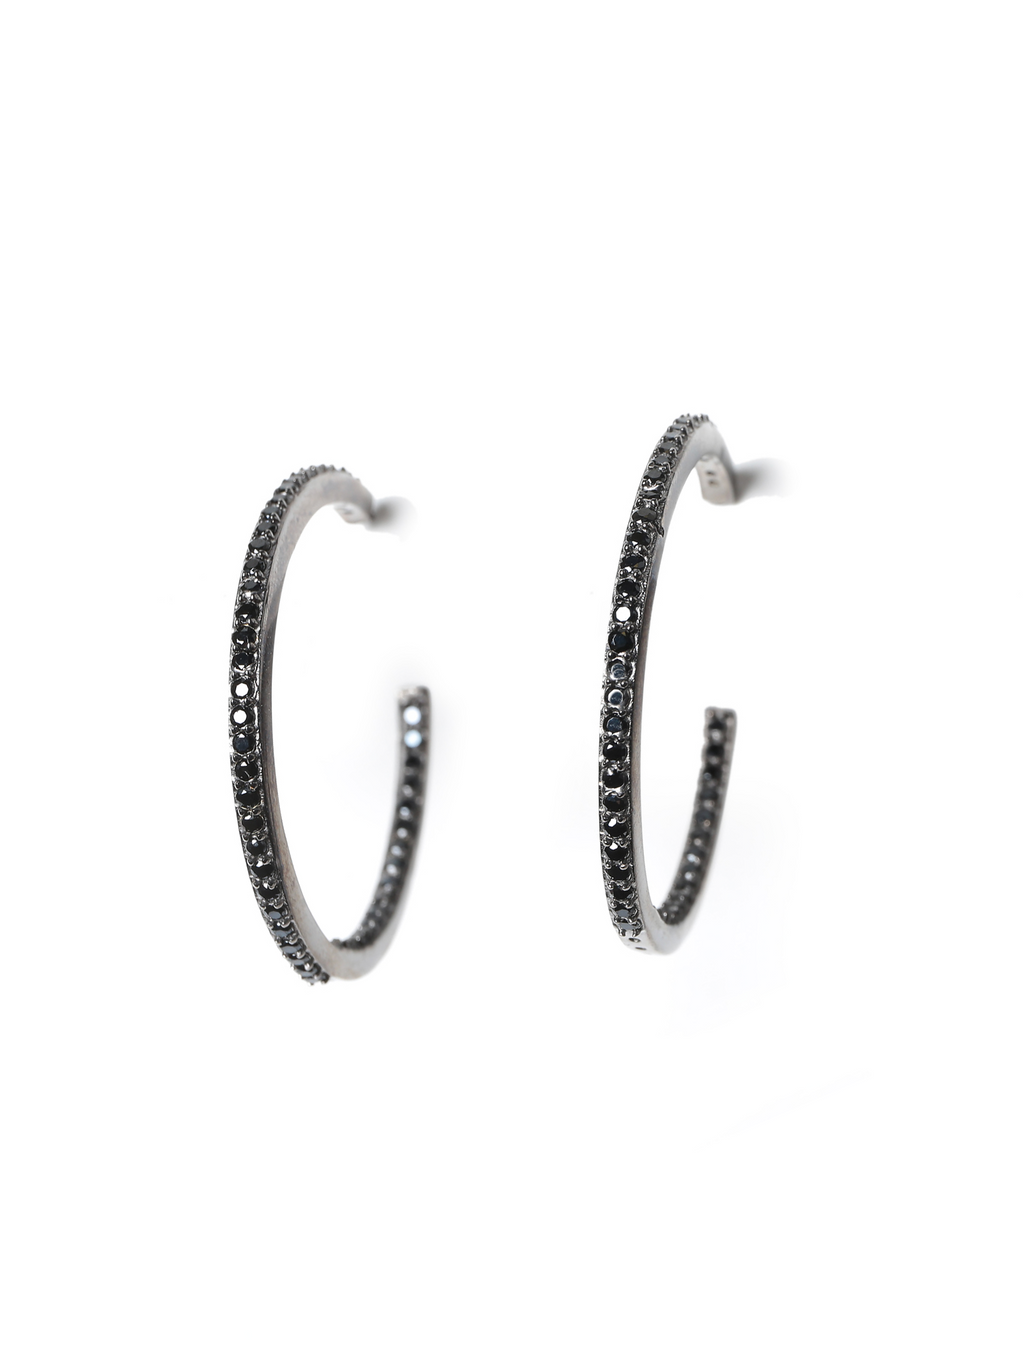 Margo Morrison Black Spinel Hoop Earrings